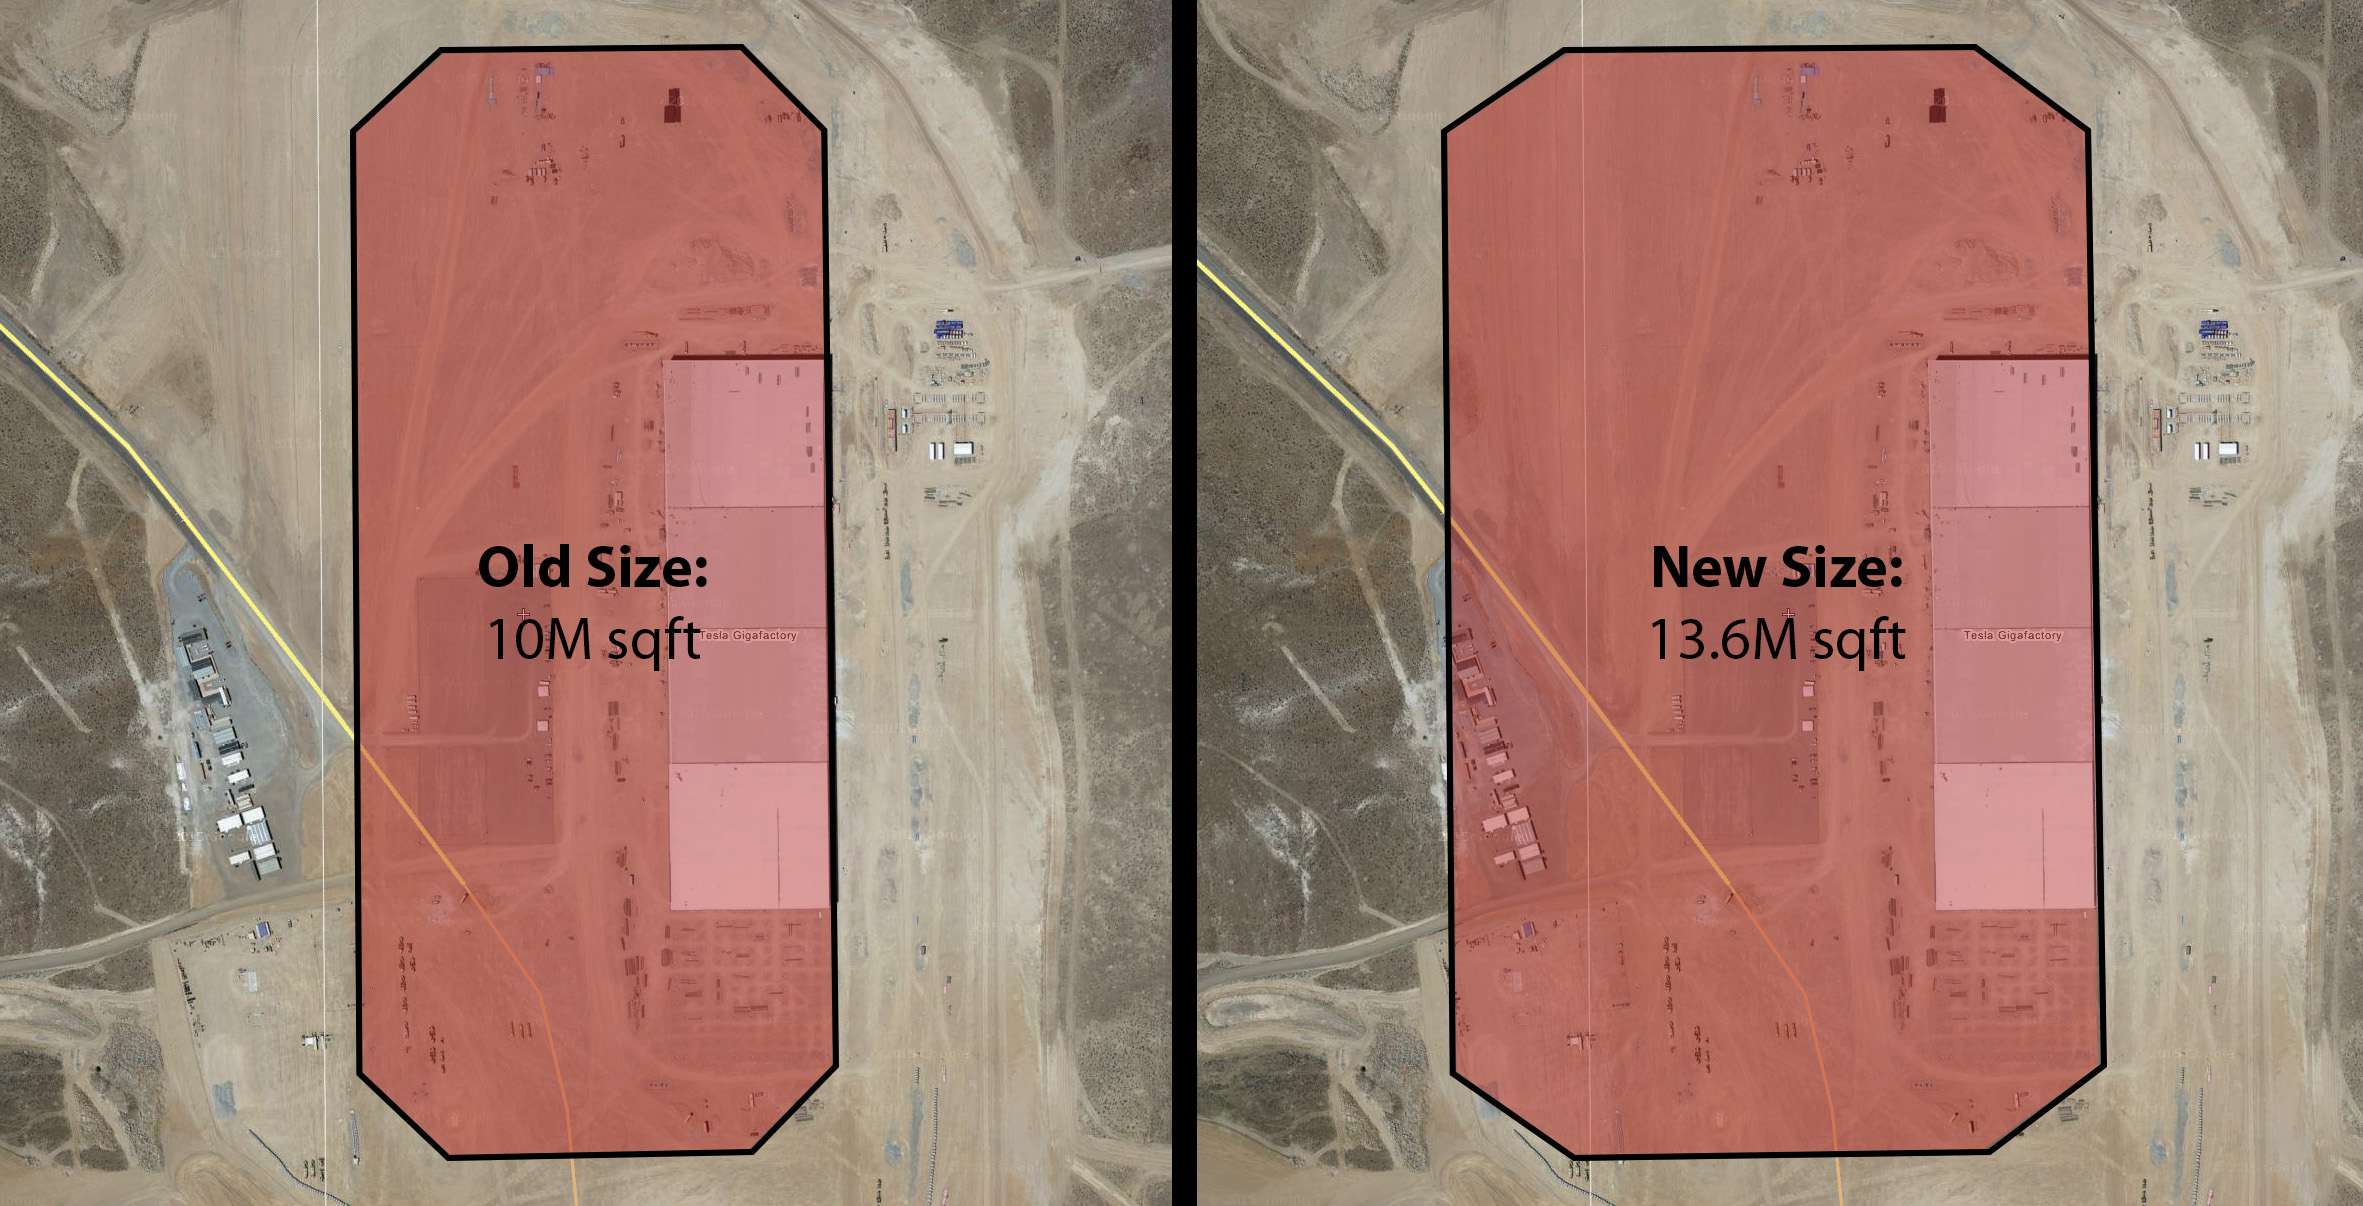 gigafactory_updated